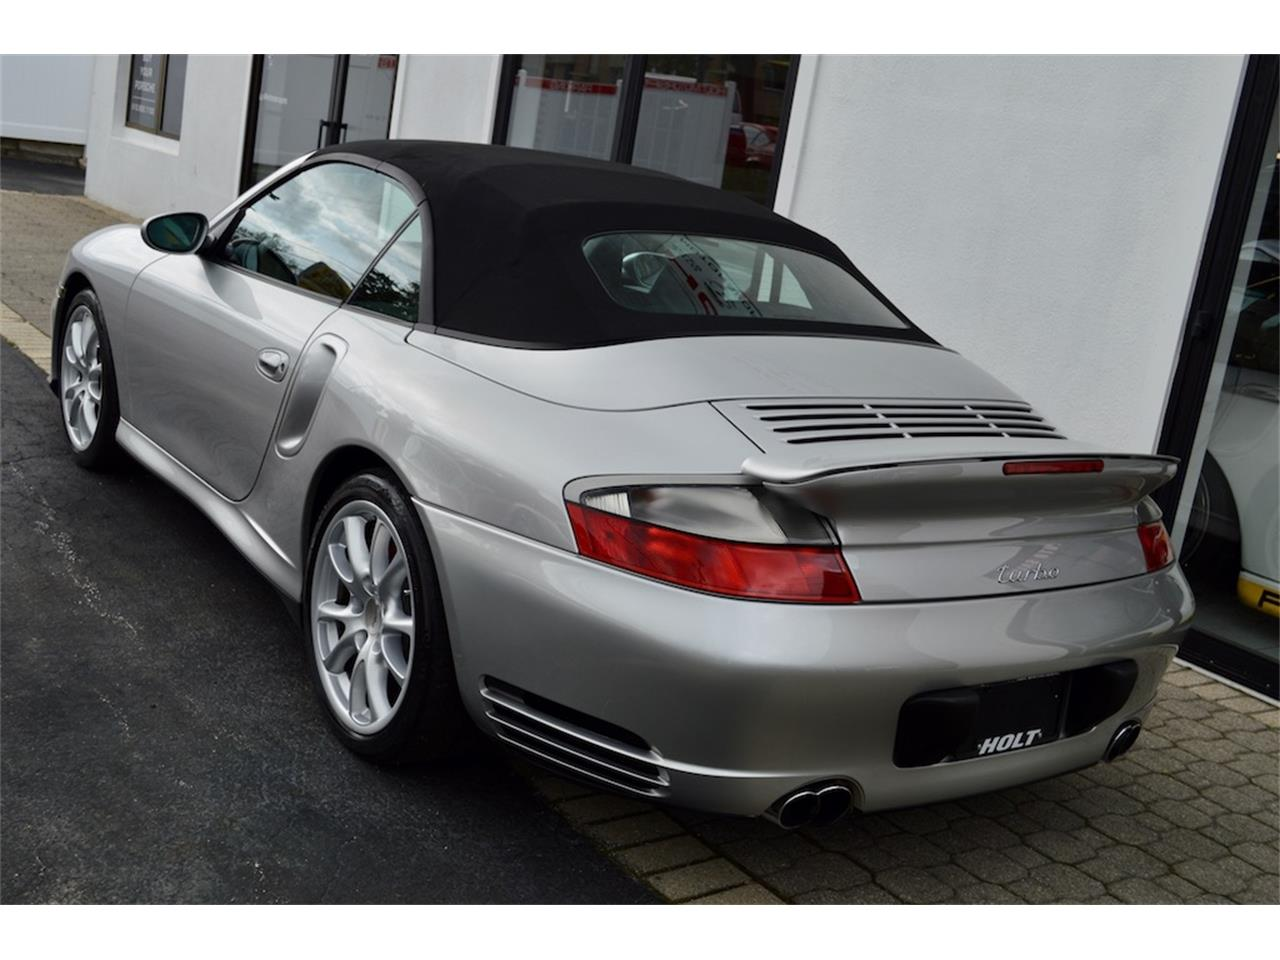 Large Picture of 2004 Porsche 996 Turbo Cabriolet - $46,500.00 Offered by Holt Motorsports - NQV0